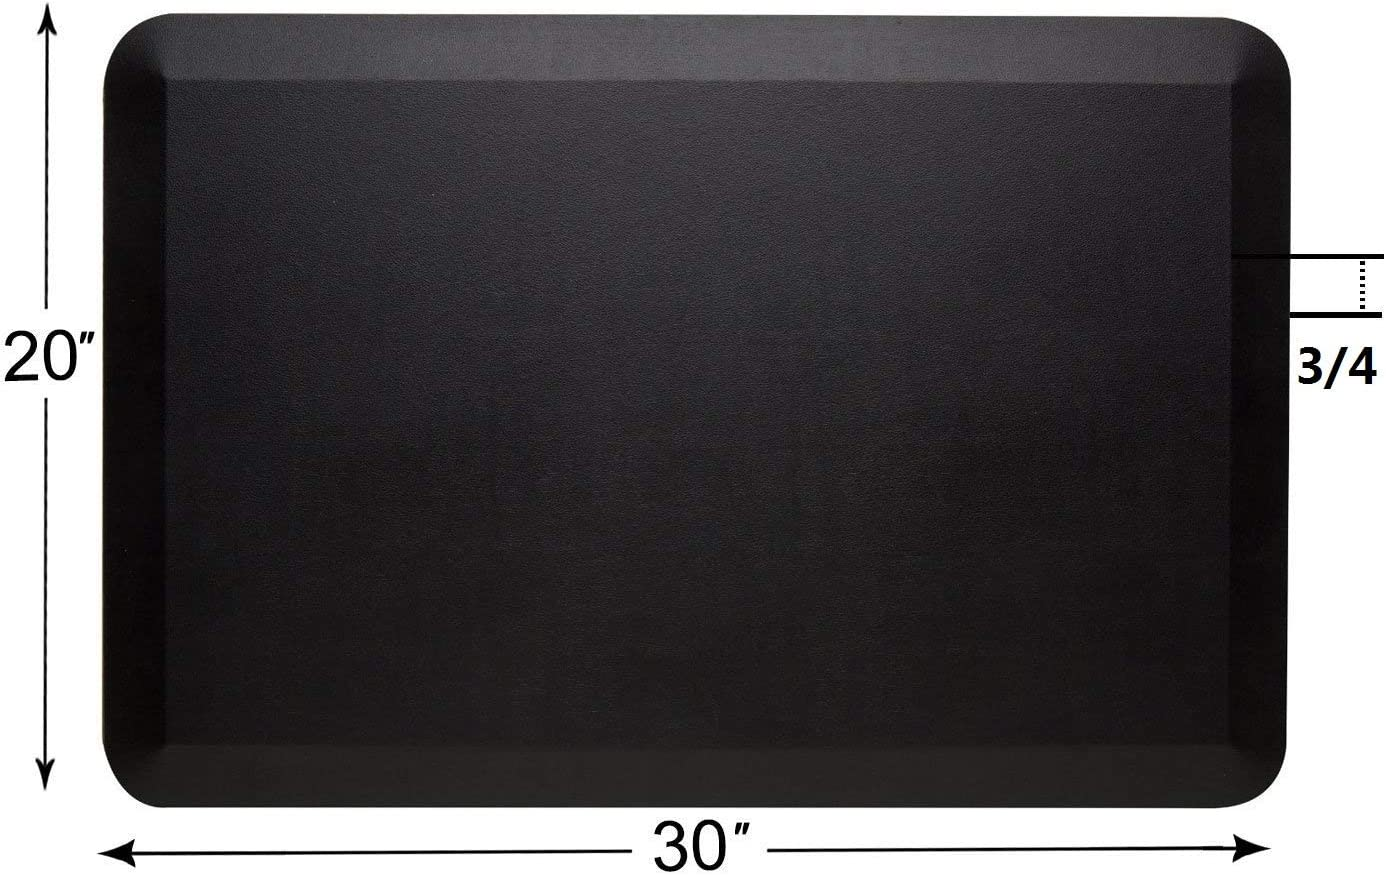 Amcomfy Anti Fatigue Mat Comfort Standing Mat for Kitchen and Office (20 x 30 x 3/4 Inches, black)